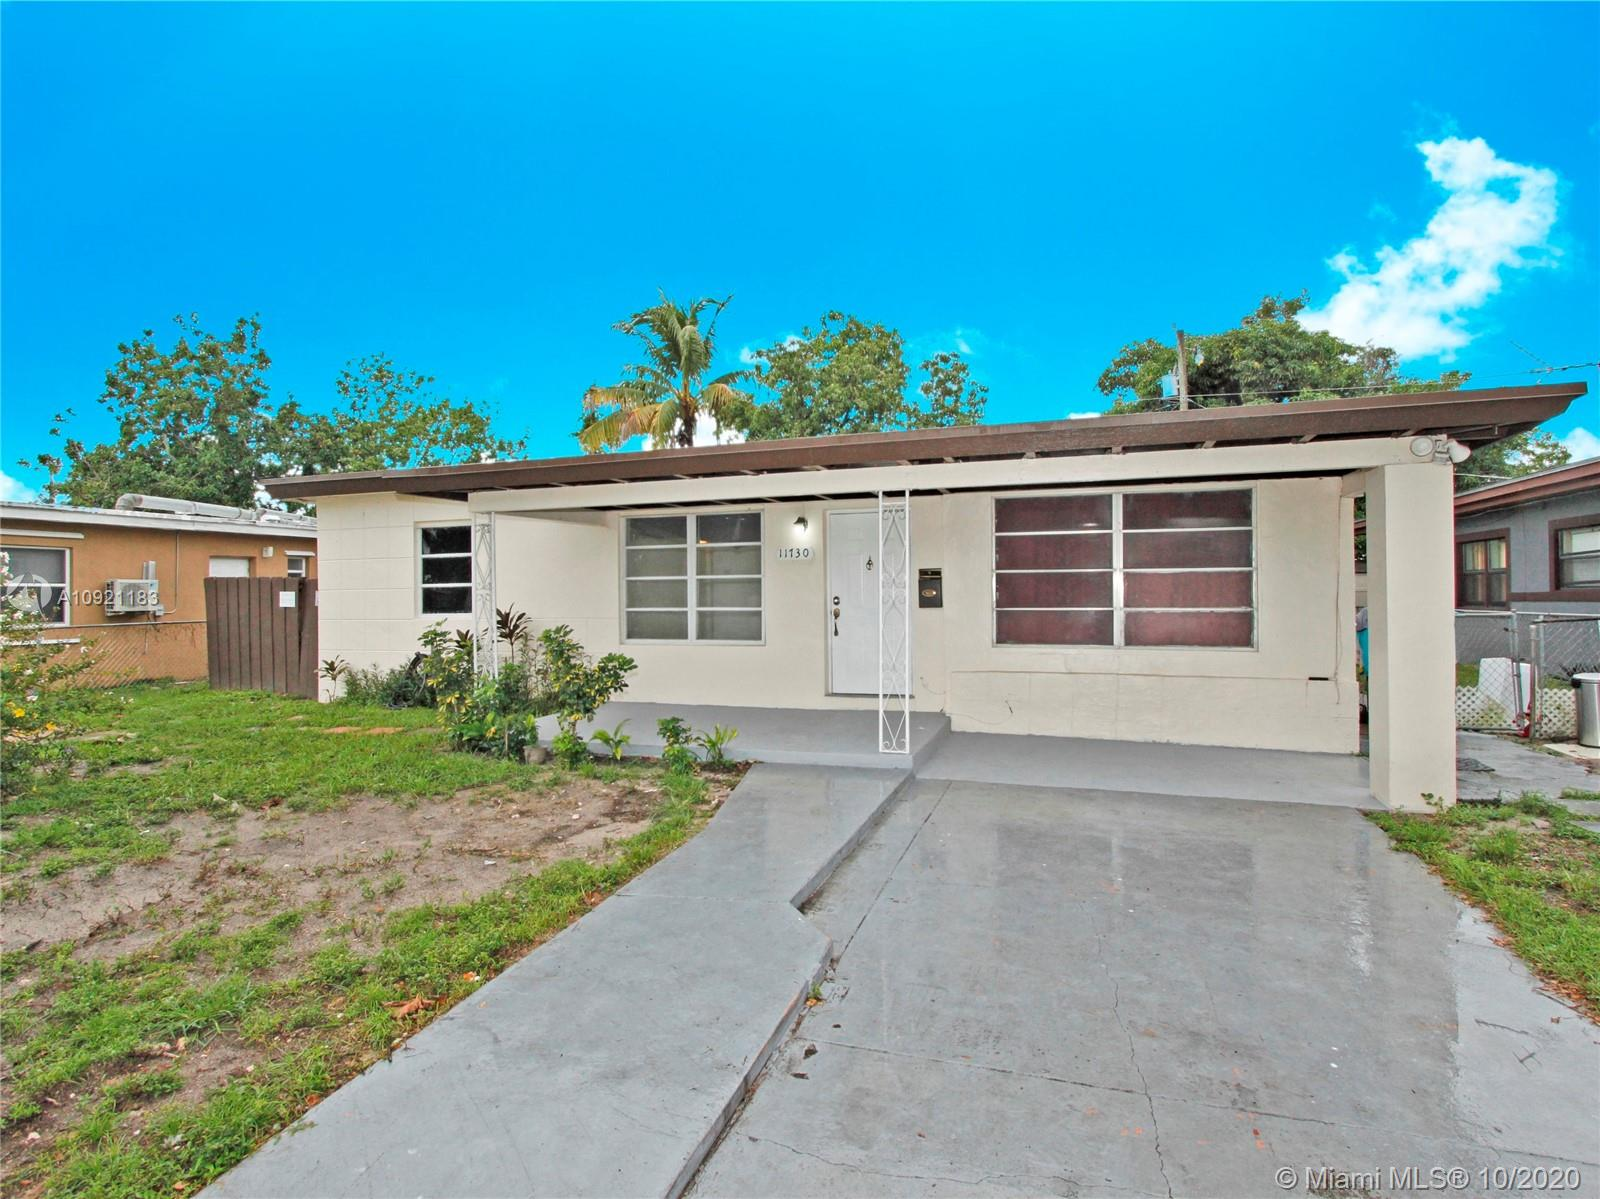 Details for 11730 3rd Ave, Miami, FL 33168